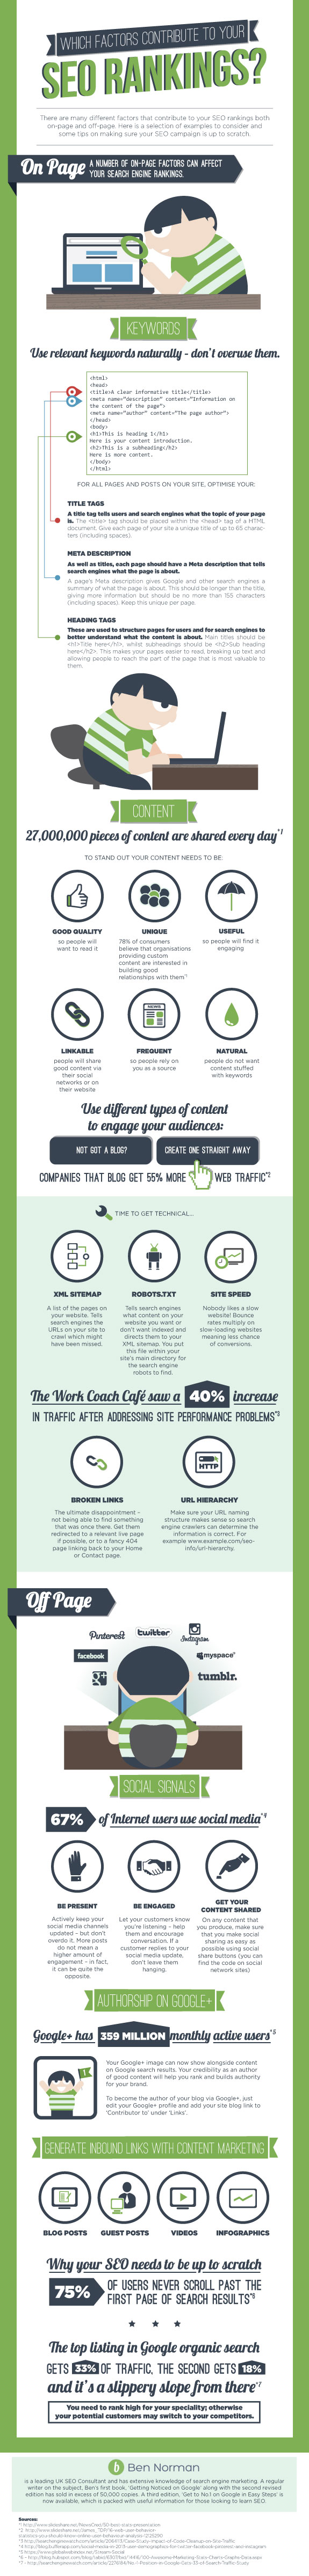 SEO-Rankings-Infographic-575px.jpg